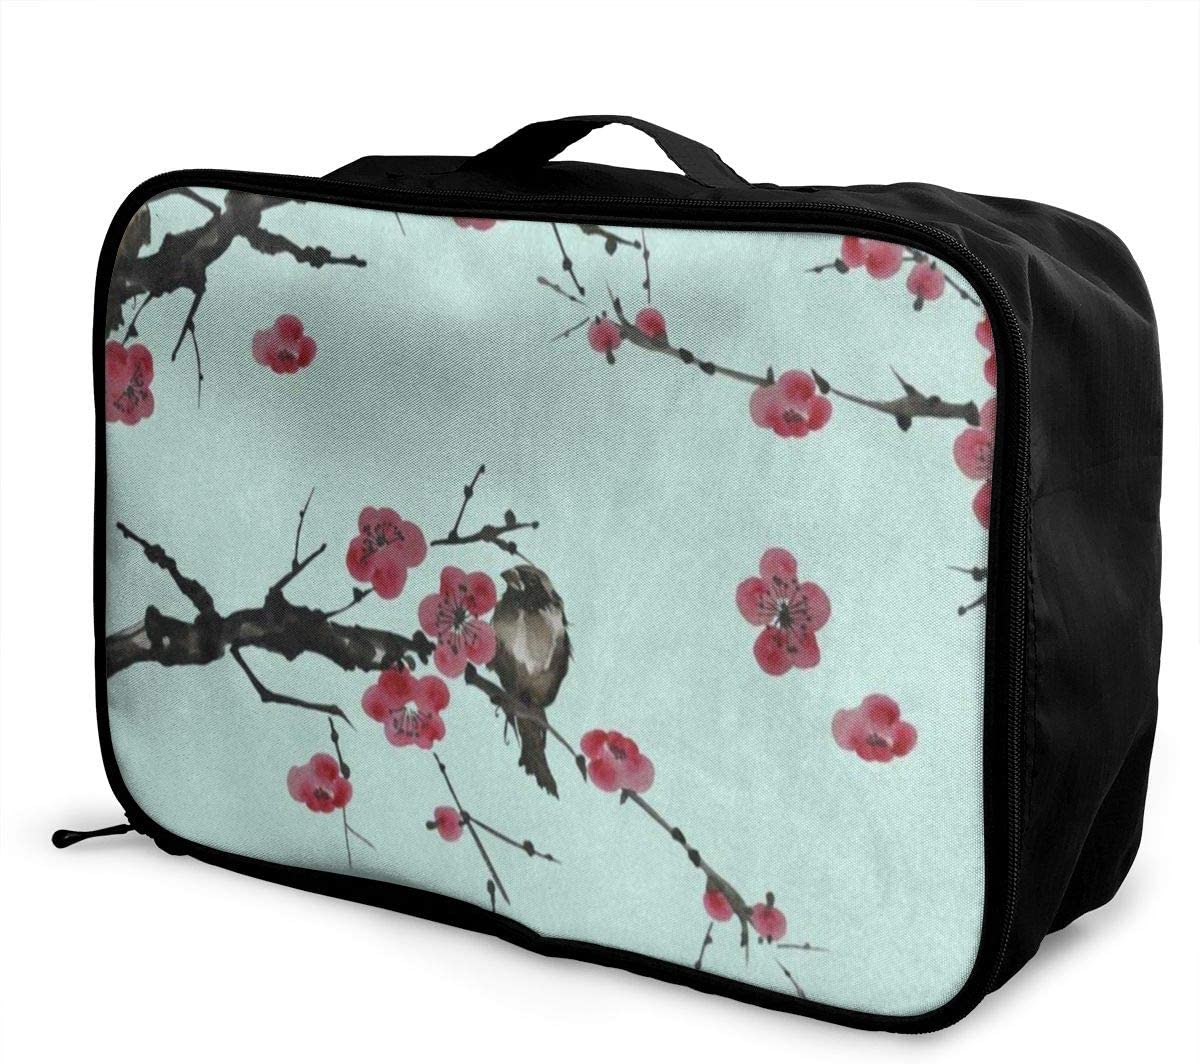 Flowers Pink Bloom Tree Travel Lightweight Waterproof Foldable Storage Carry Luggage Large Capacity Portable Luggage Bag Duffel Bag